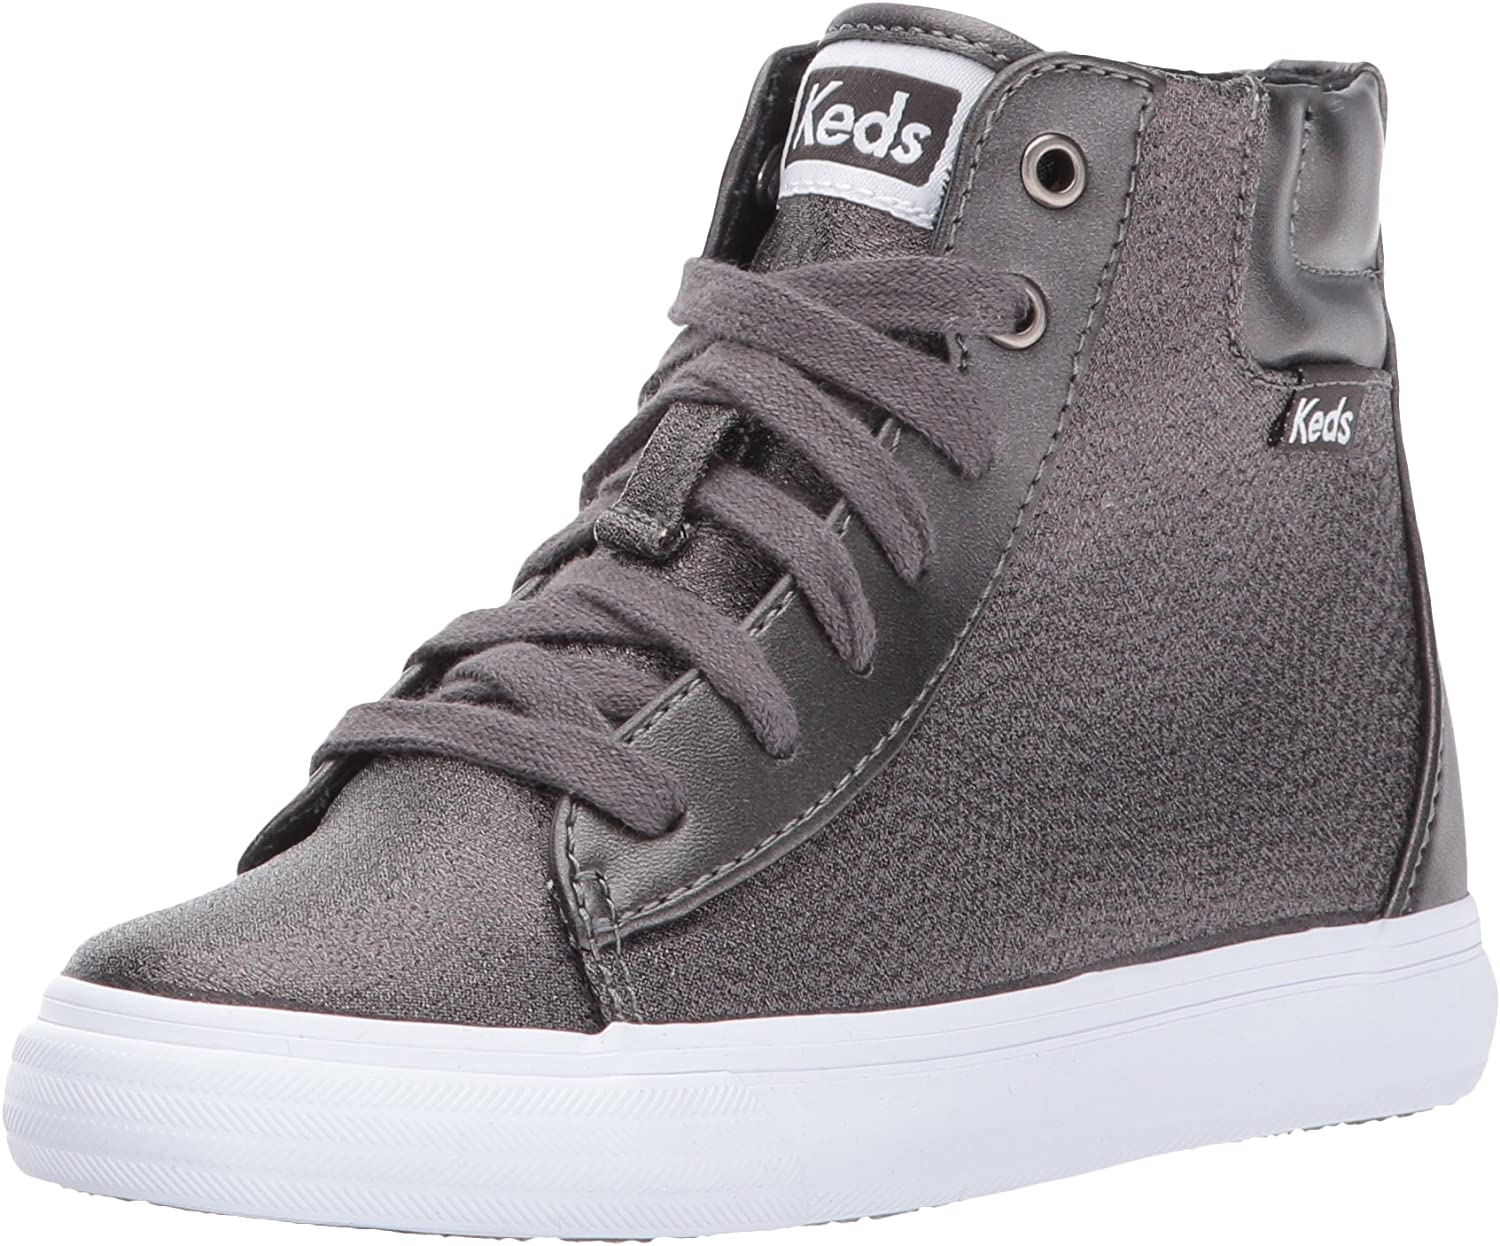 Keds Double Up High Top Sneaker